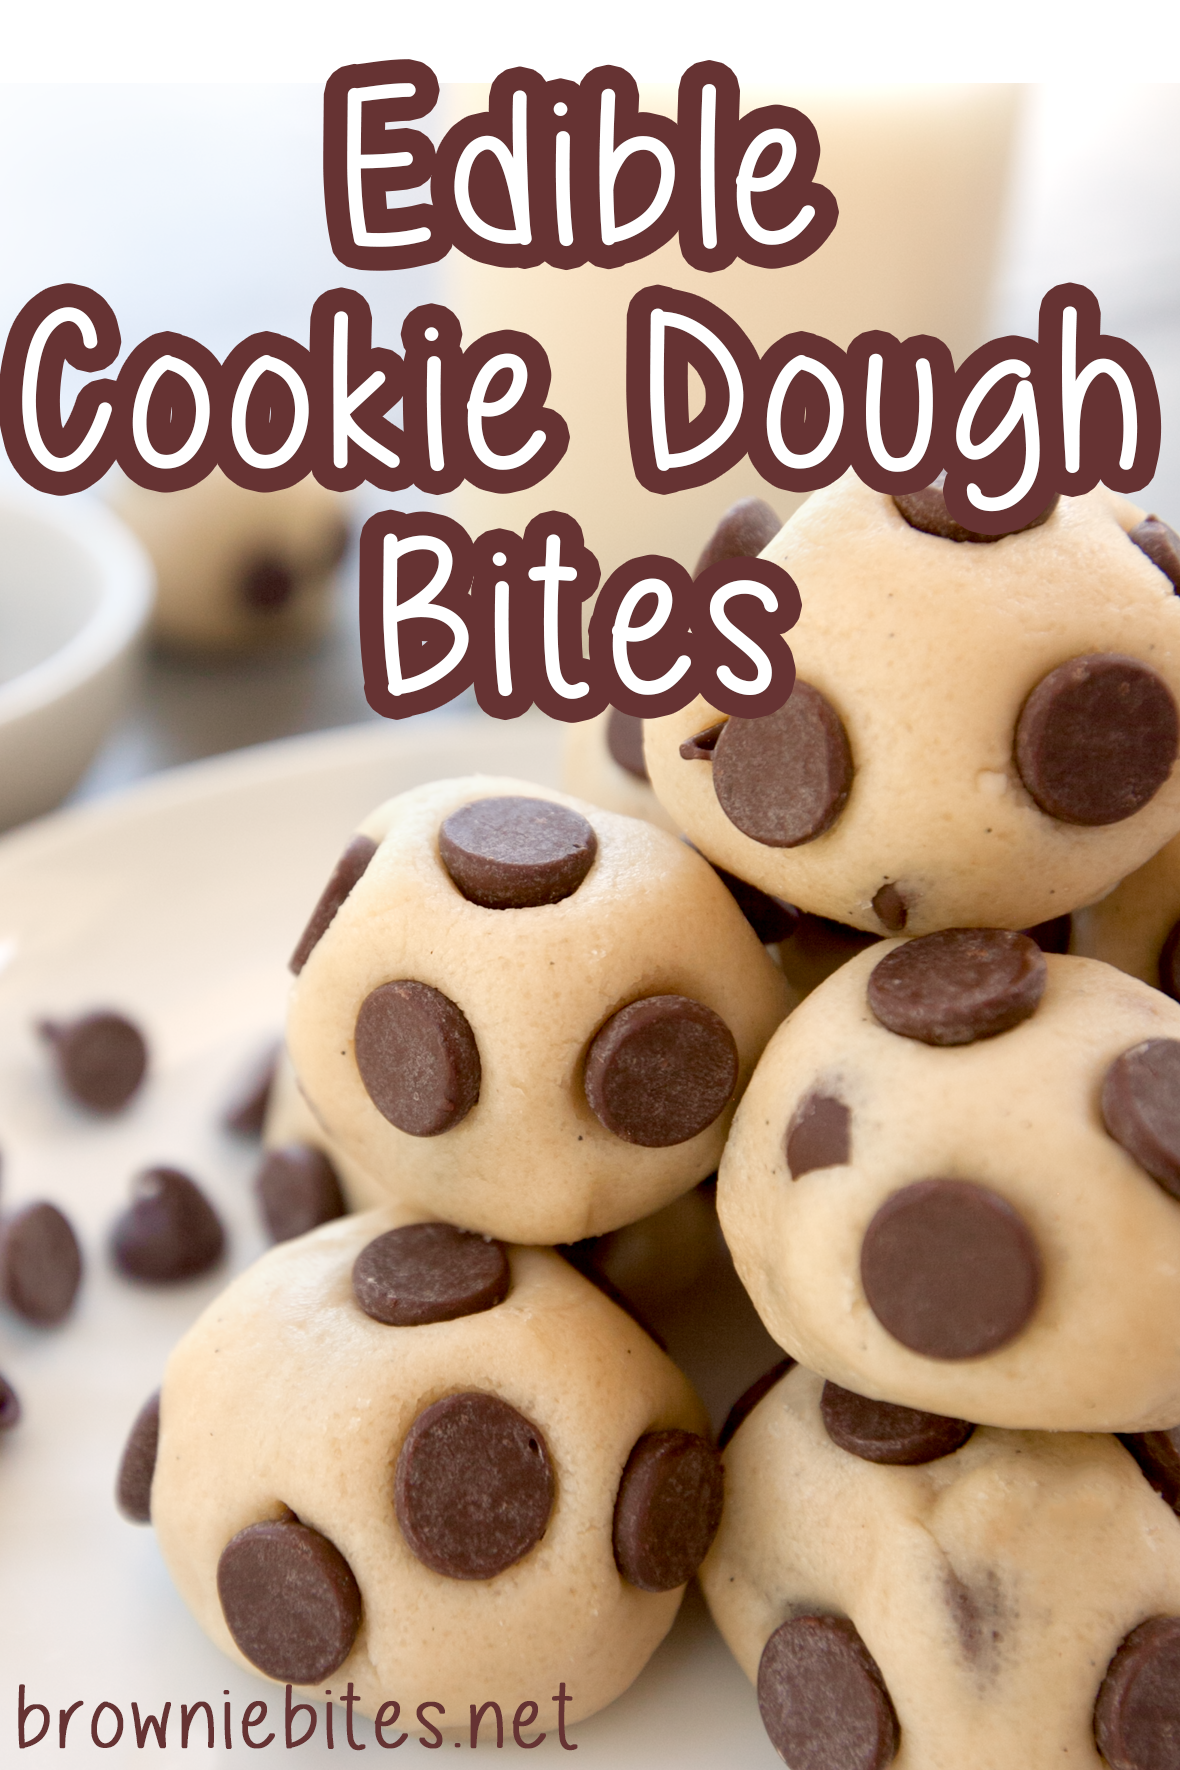 A close up of cookie dough bites with title text for Pinterest